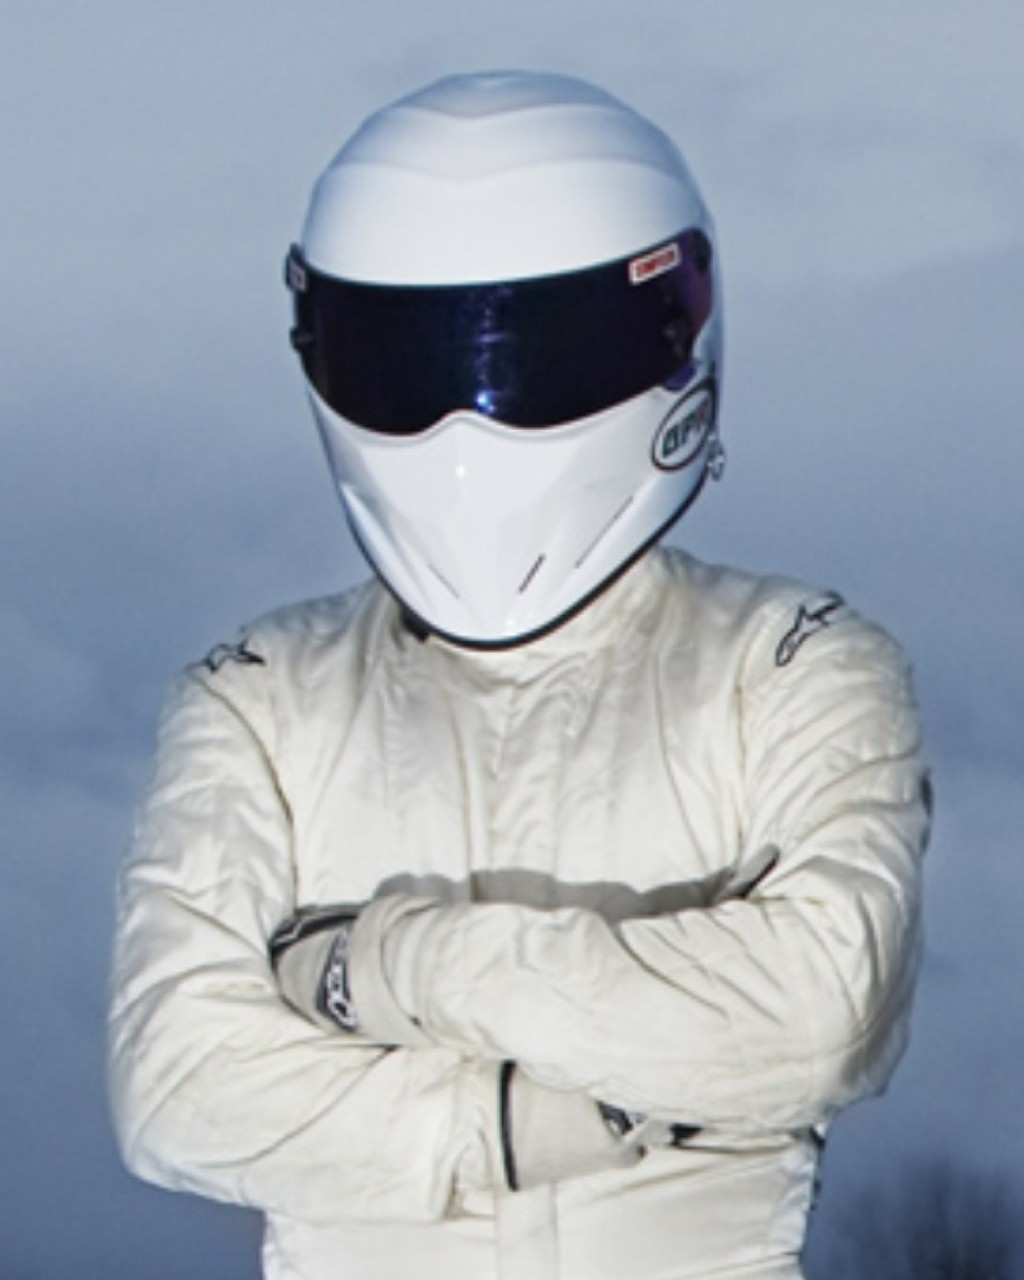 Obi S World Wide Web Of Cars Become The Stig